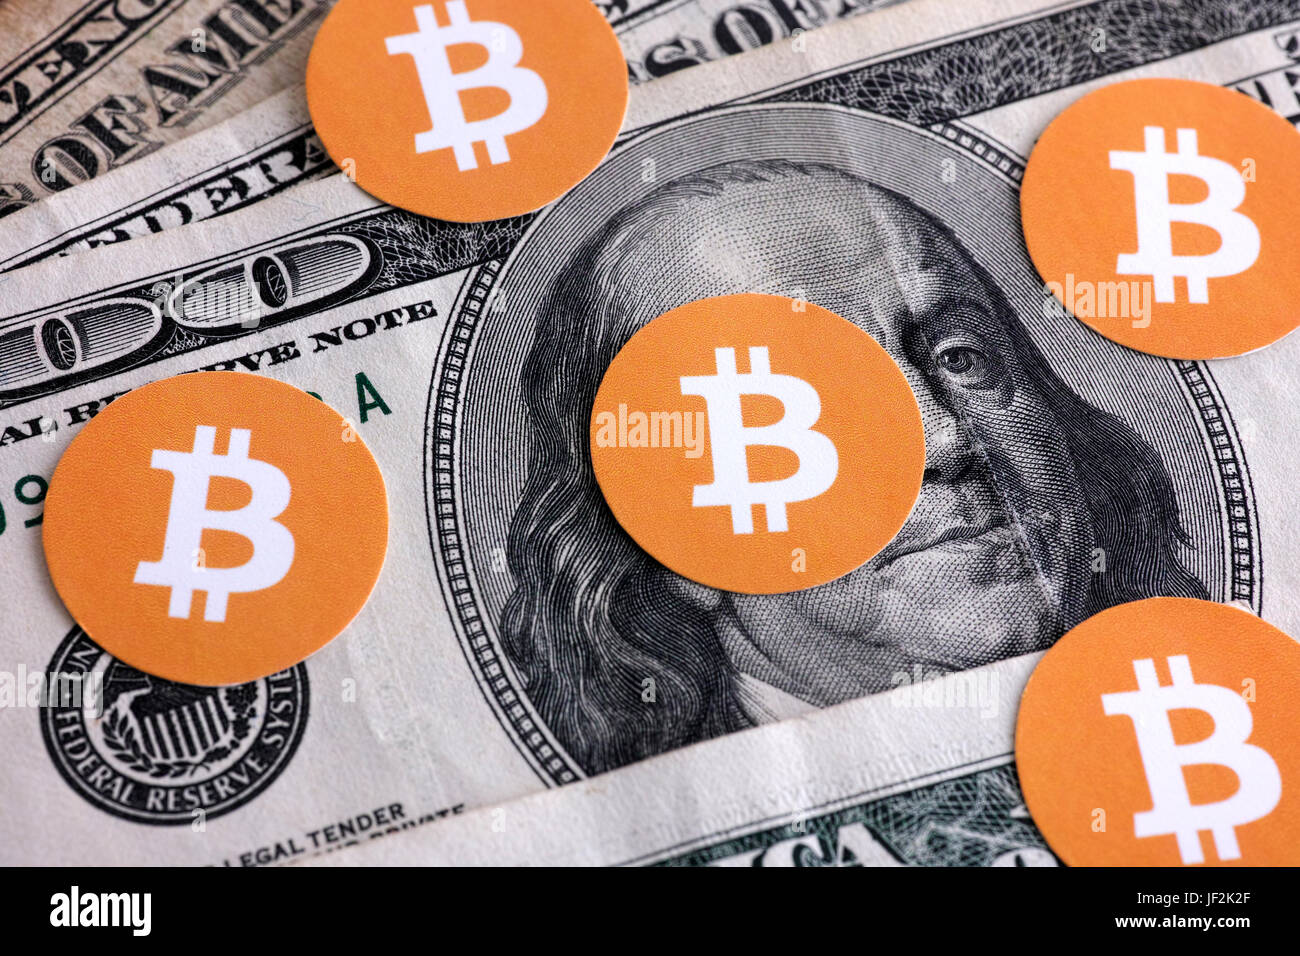 Bitcoin Symbols On Us Dollars Stock Photos Bitcoin Symbols On Us